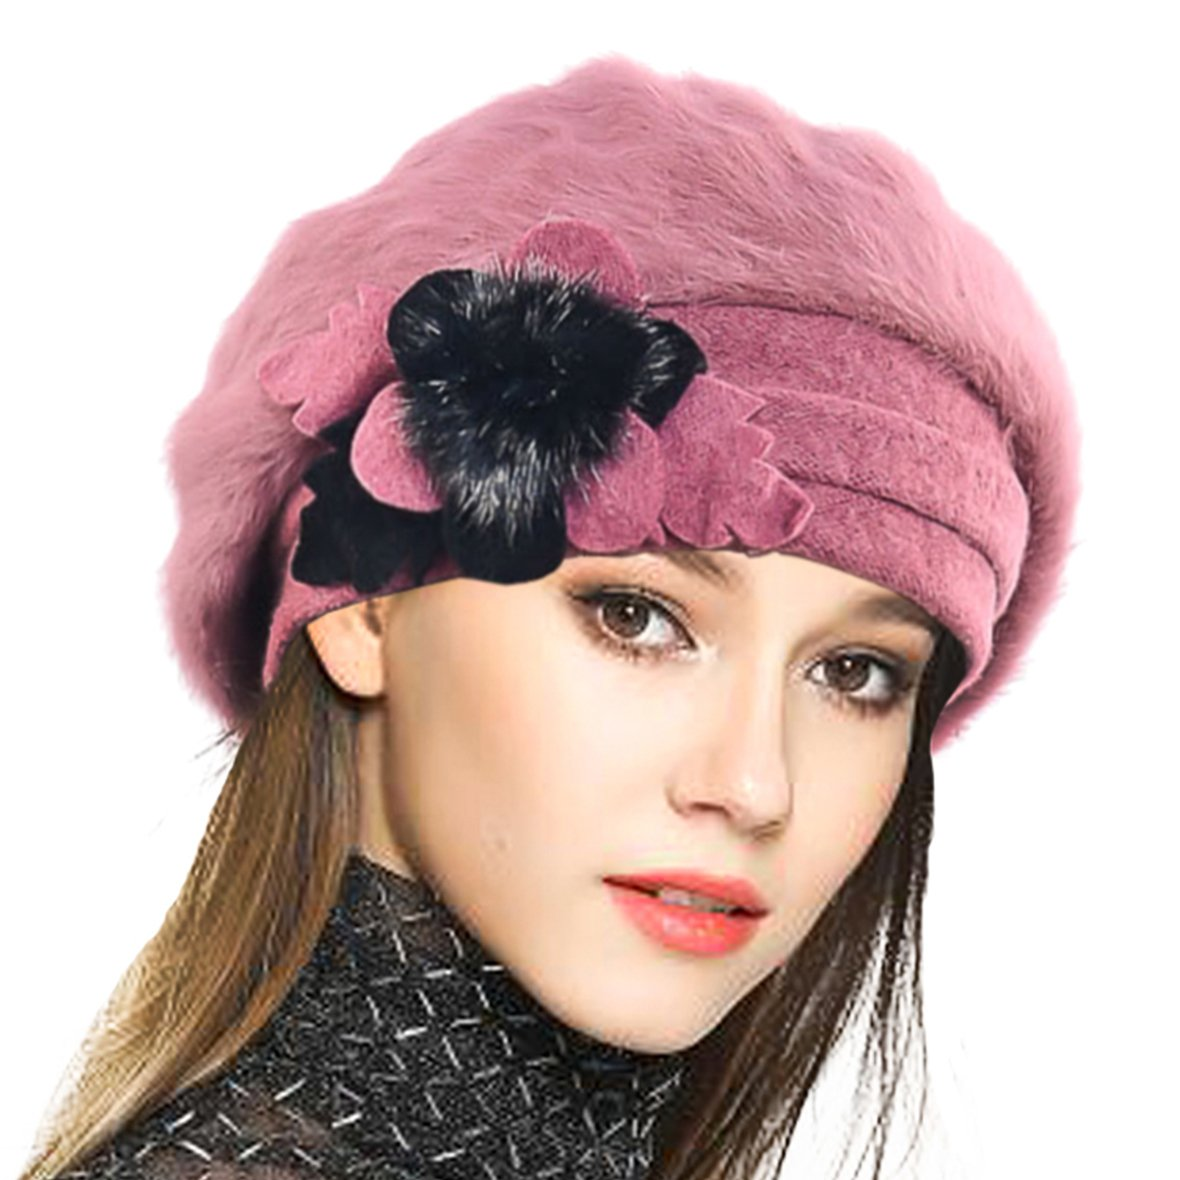 VECRY Lady French Beret 100% Wool Beret Floral Dress Beanie Winter Hat (Angola-IPink)